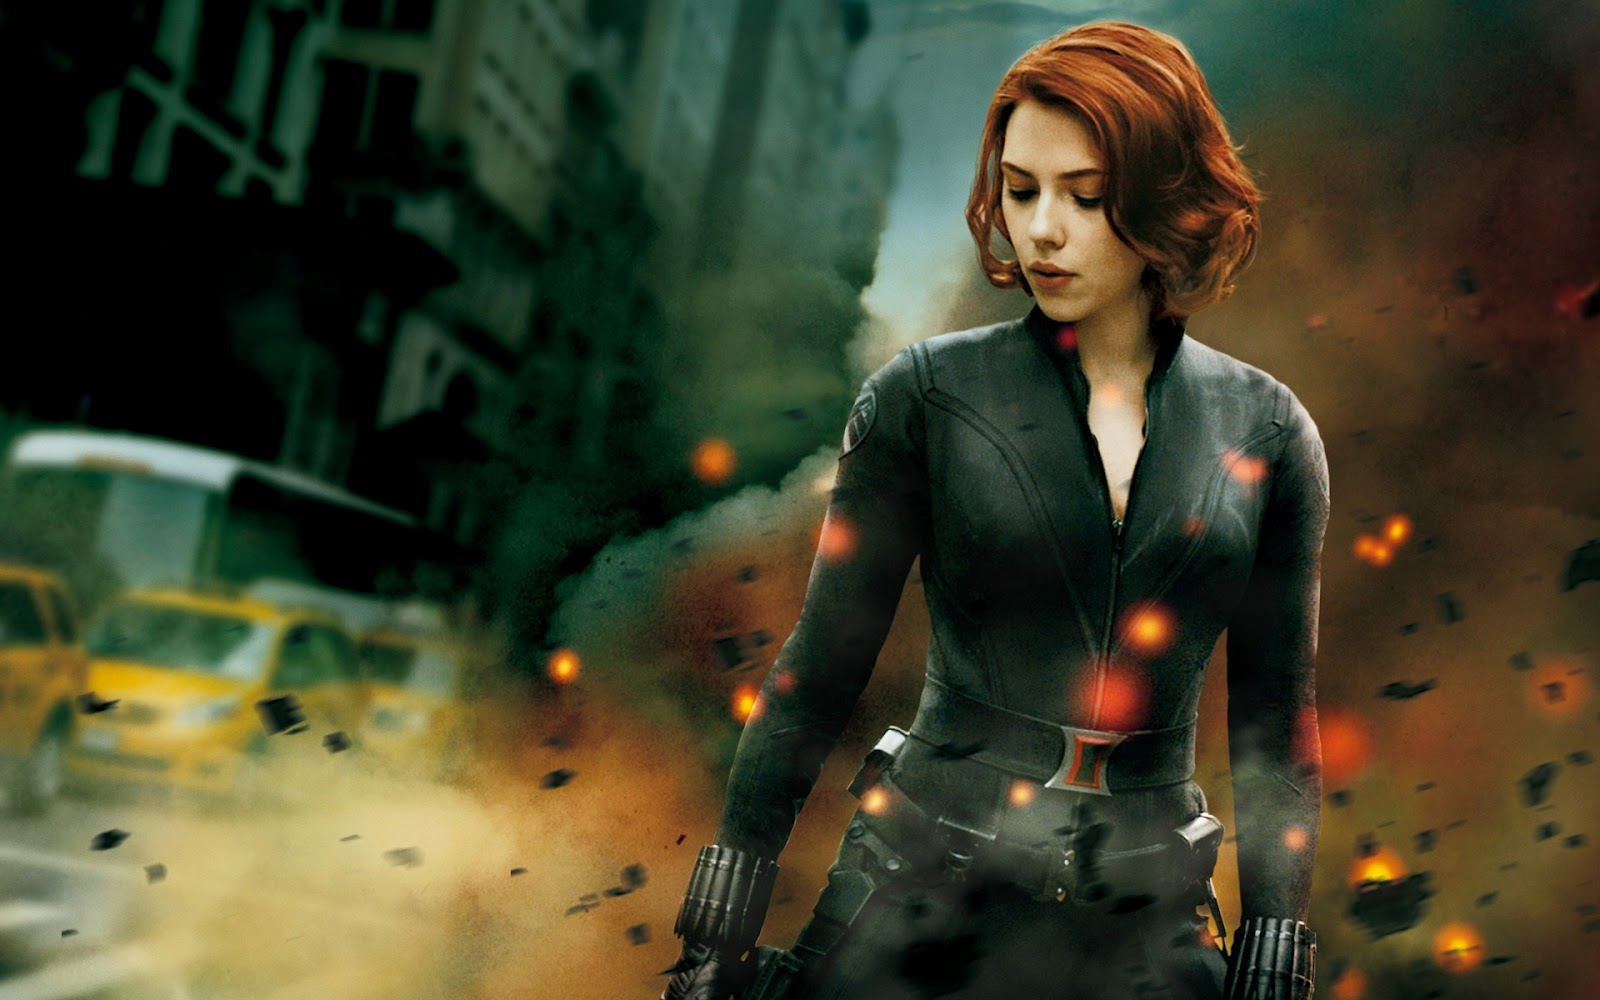 Scarlett Johansson Wallpaper: Scarlett Johansson As Black Widow HD Wallpapers